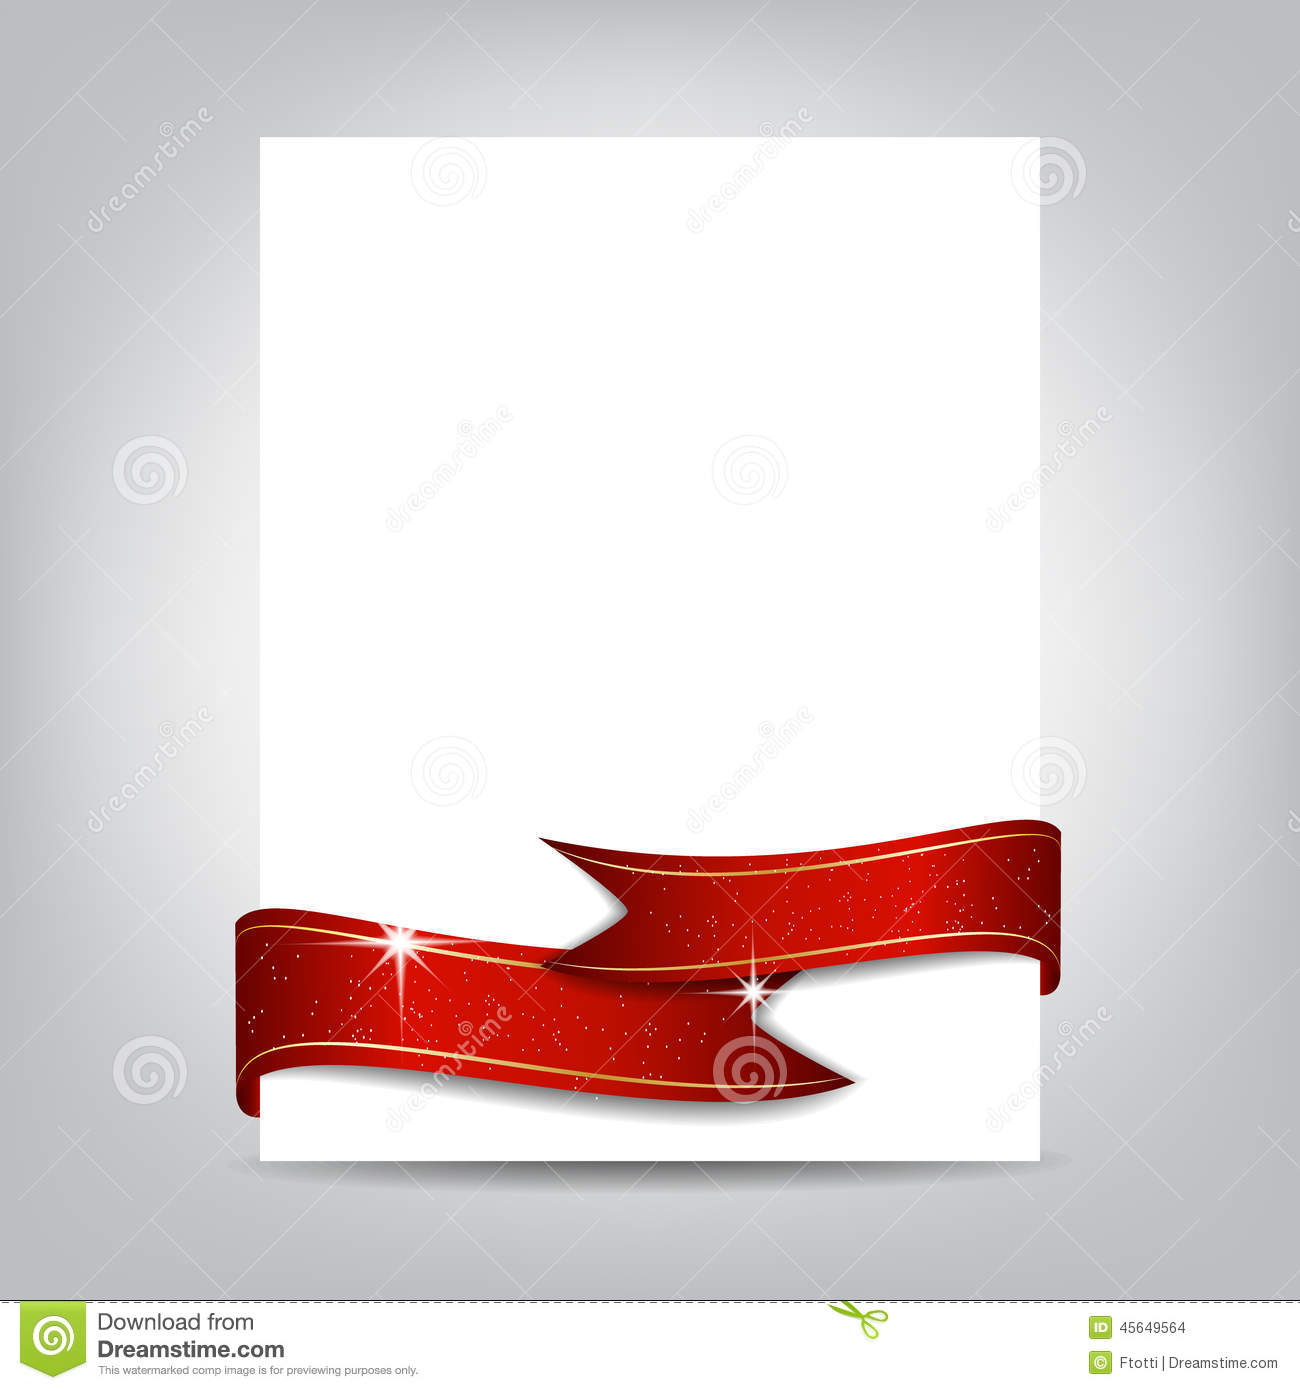 christmas flyer template paper banner red ribbon stock christmas flyer template paper banner red ribbon